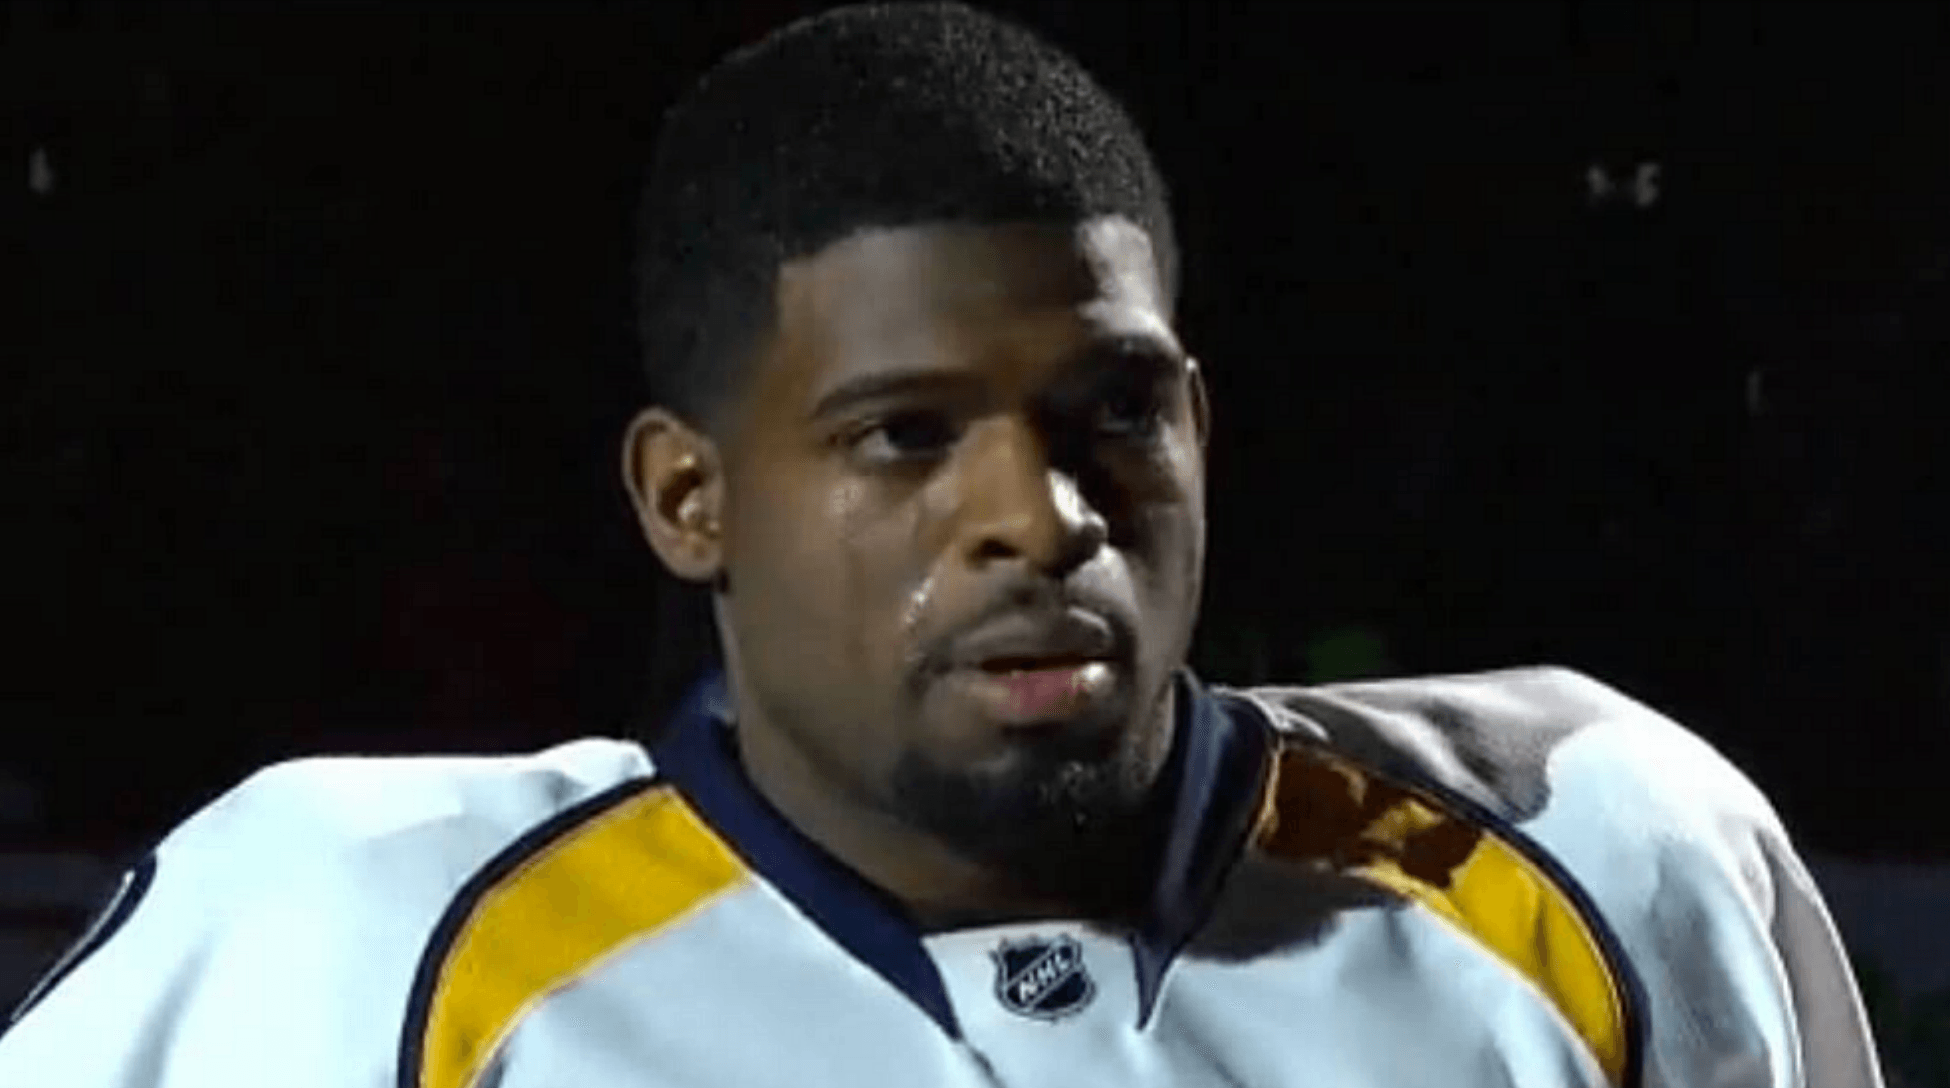 P.K. Subban honoured by the Canadiens at last night's game